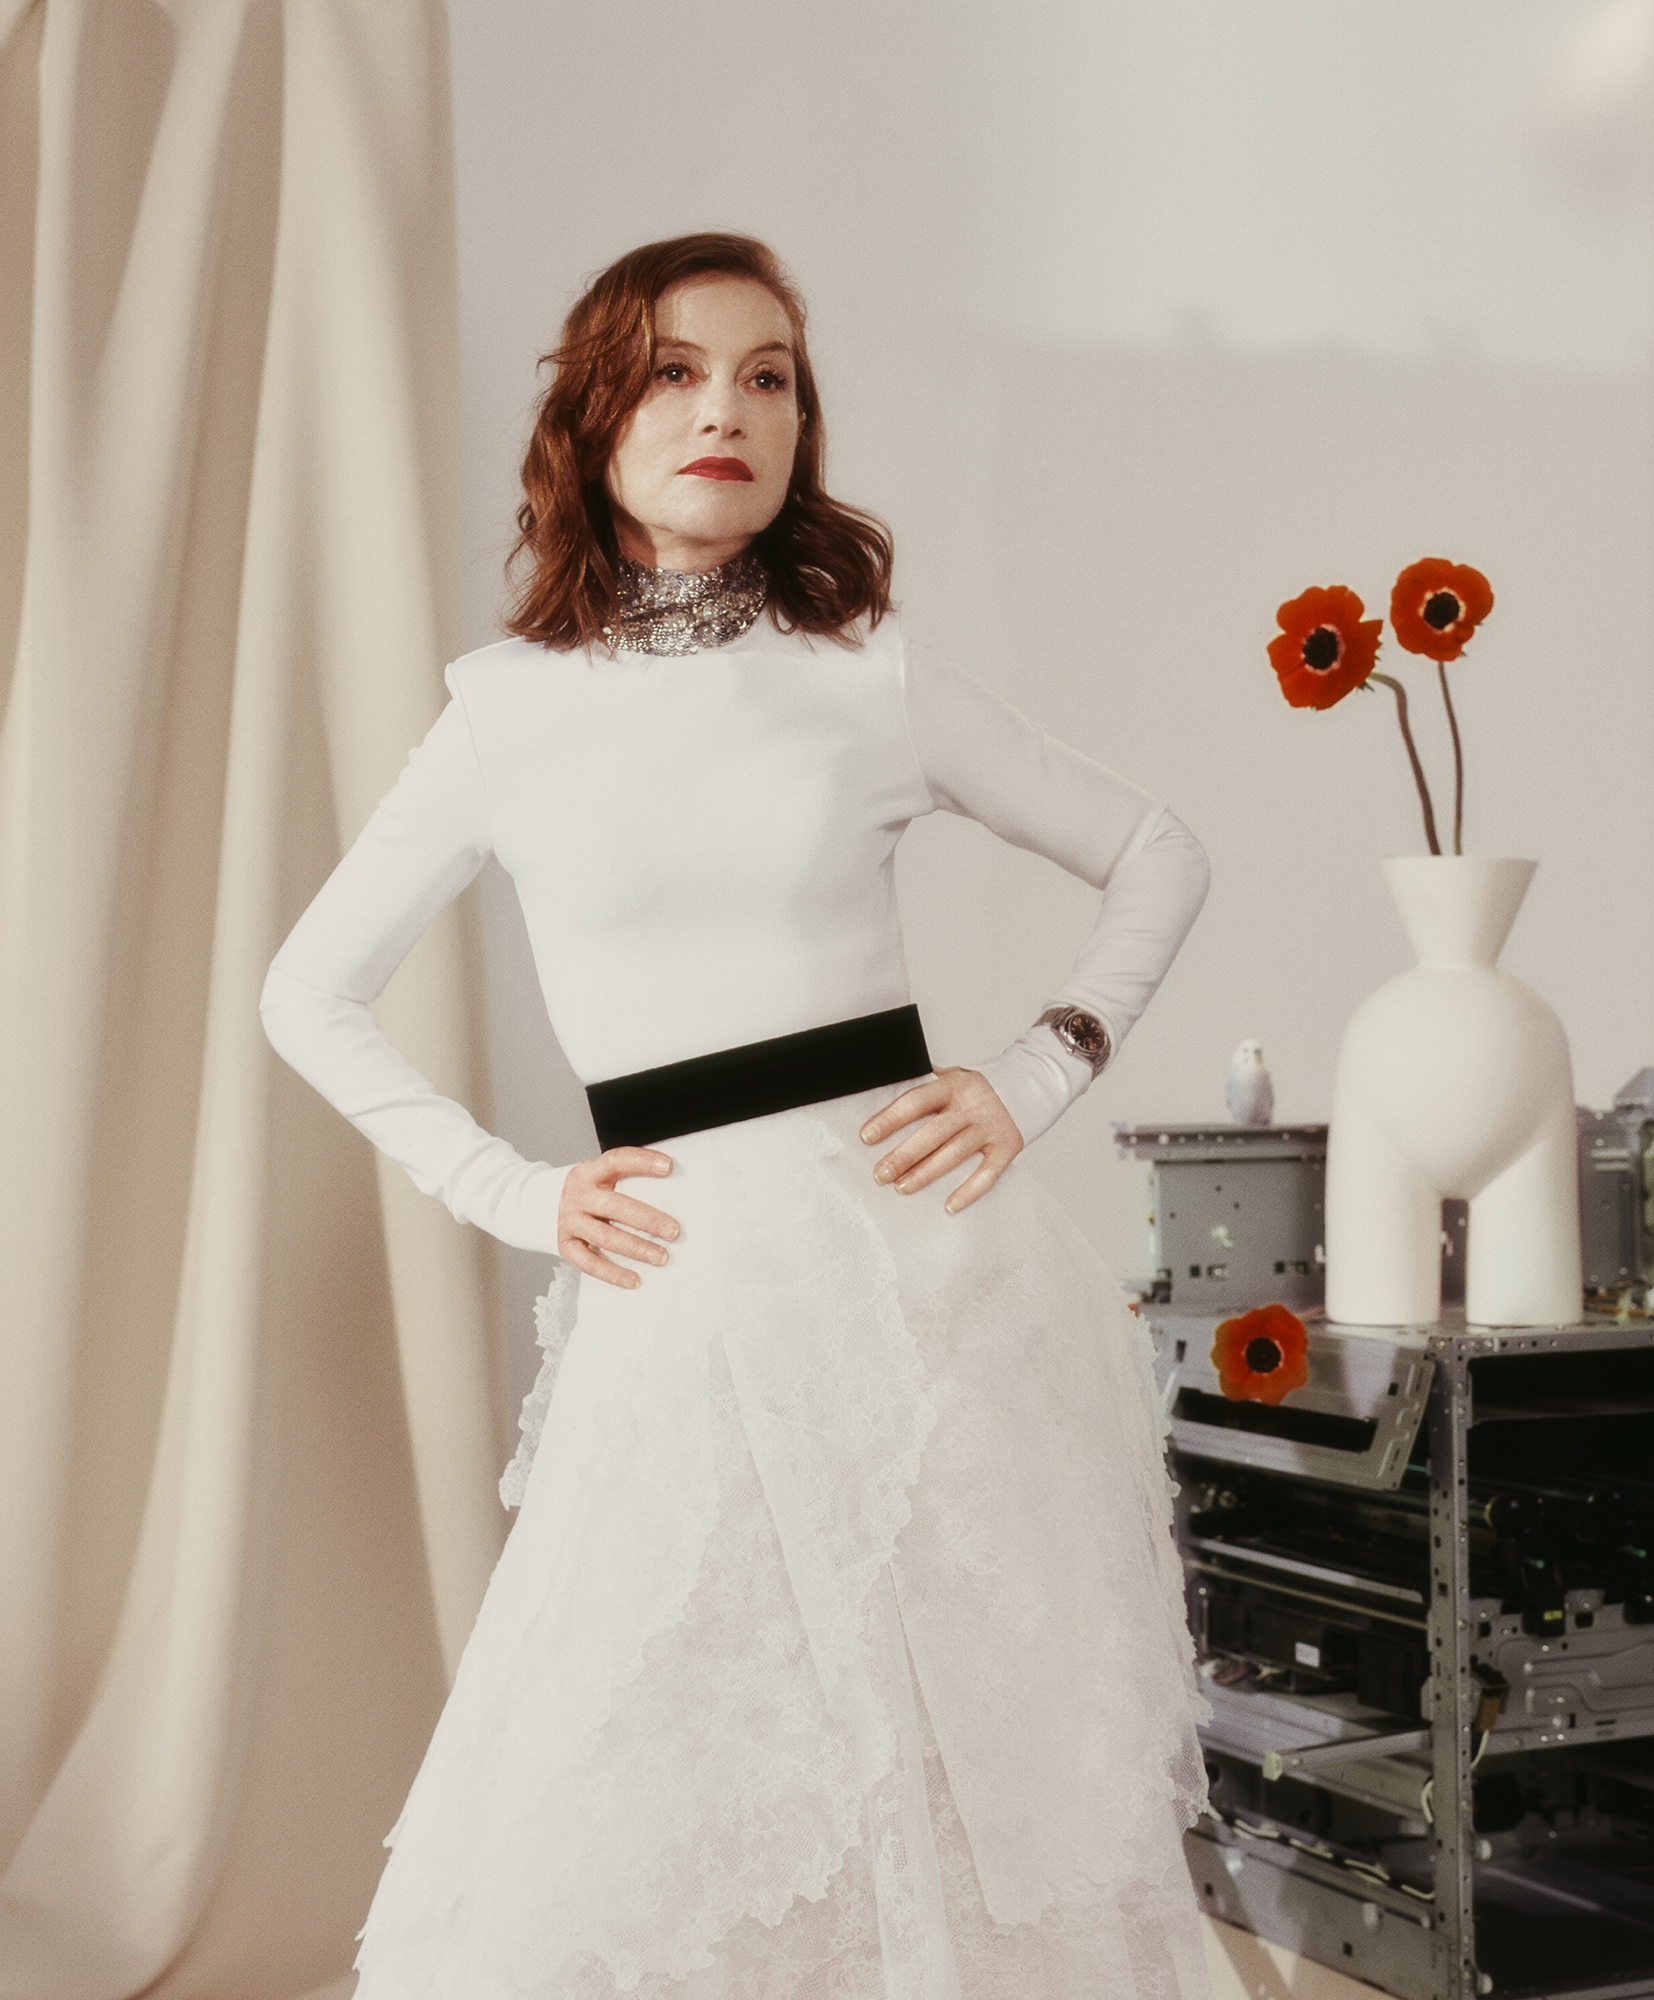 Isabelle Huppert - Givenchy Haute Couture for Crash Magazine